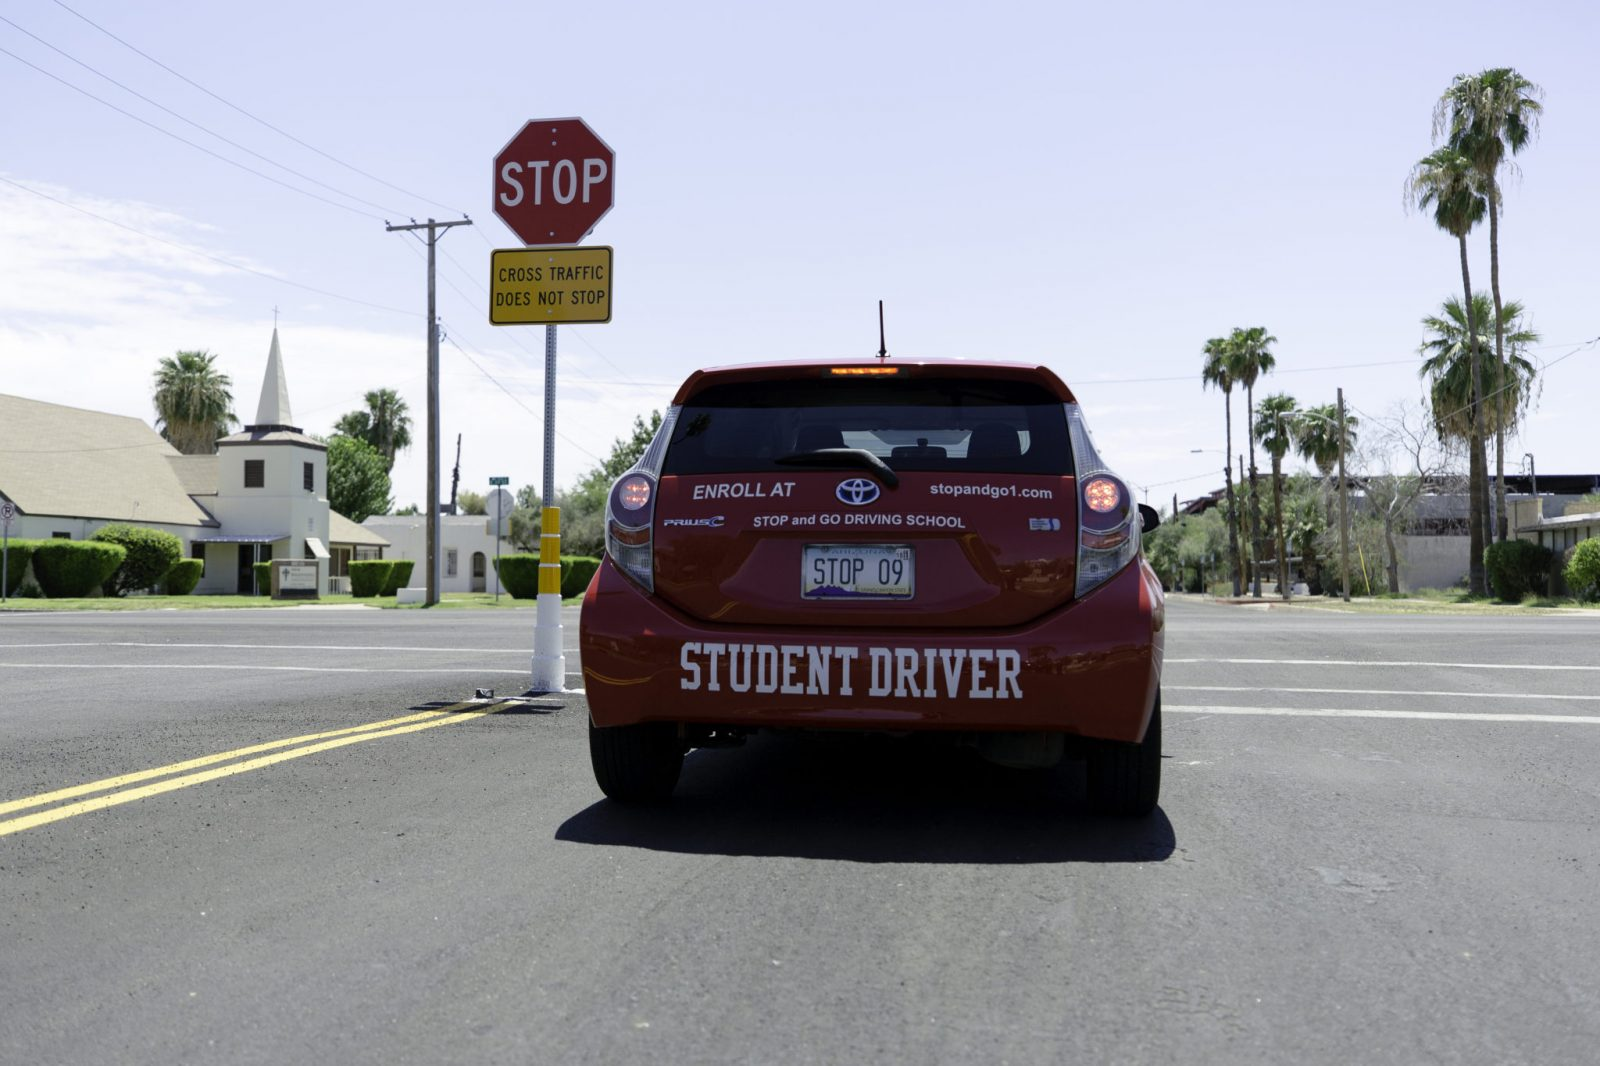 Go To Traffic School >> Stop And Go Driving School